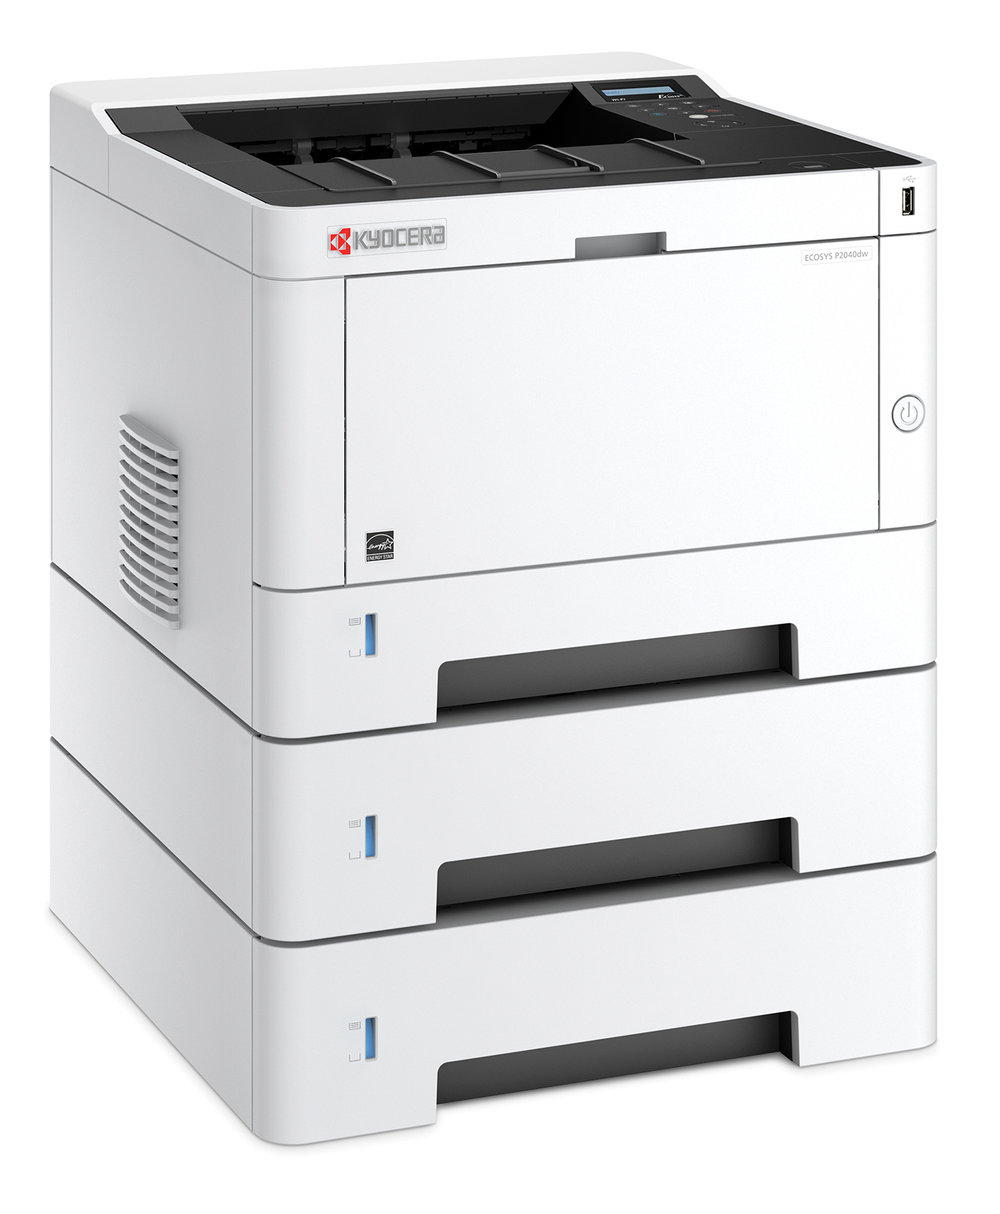 The Kyocera P2040dw with x 2 150 sheet optional trays